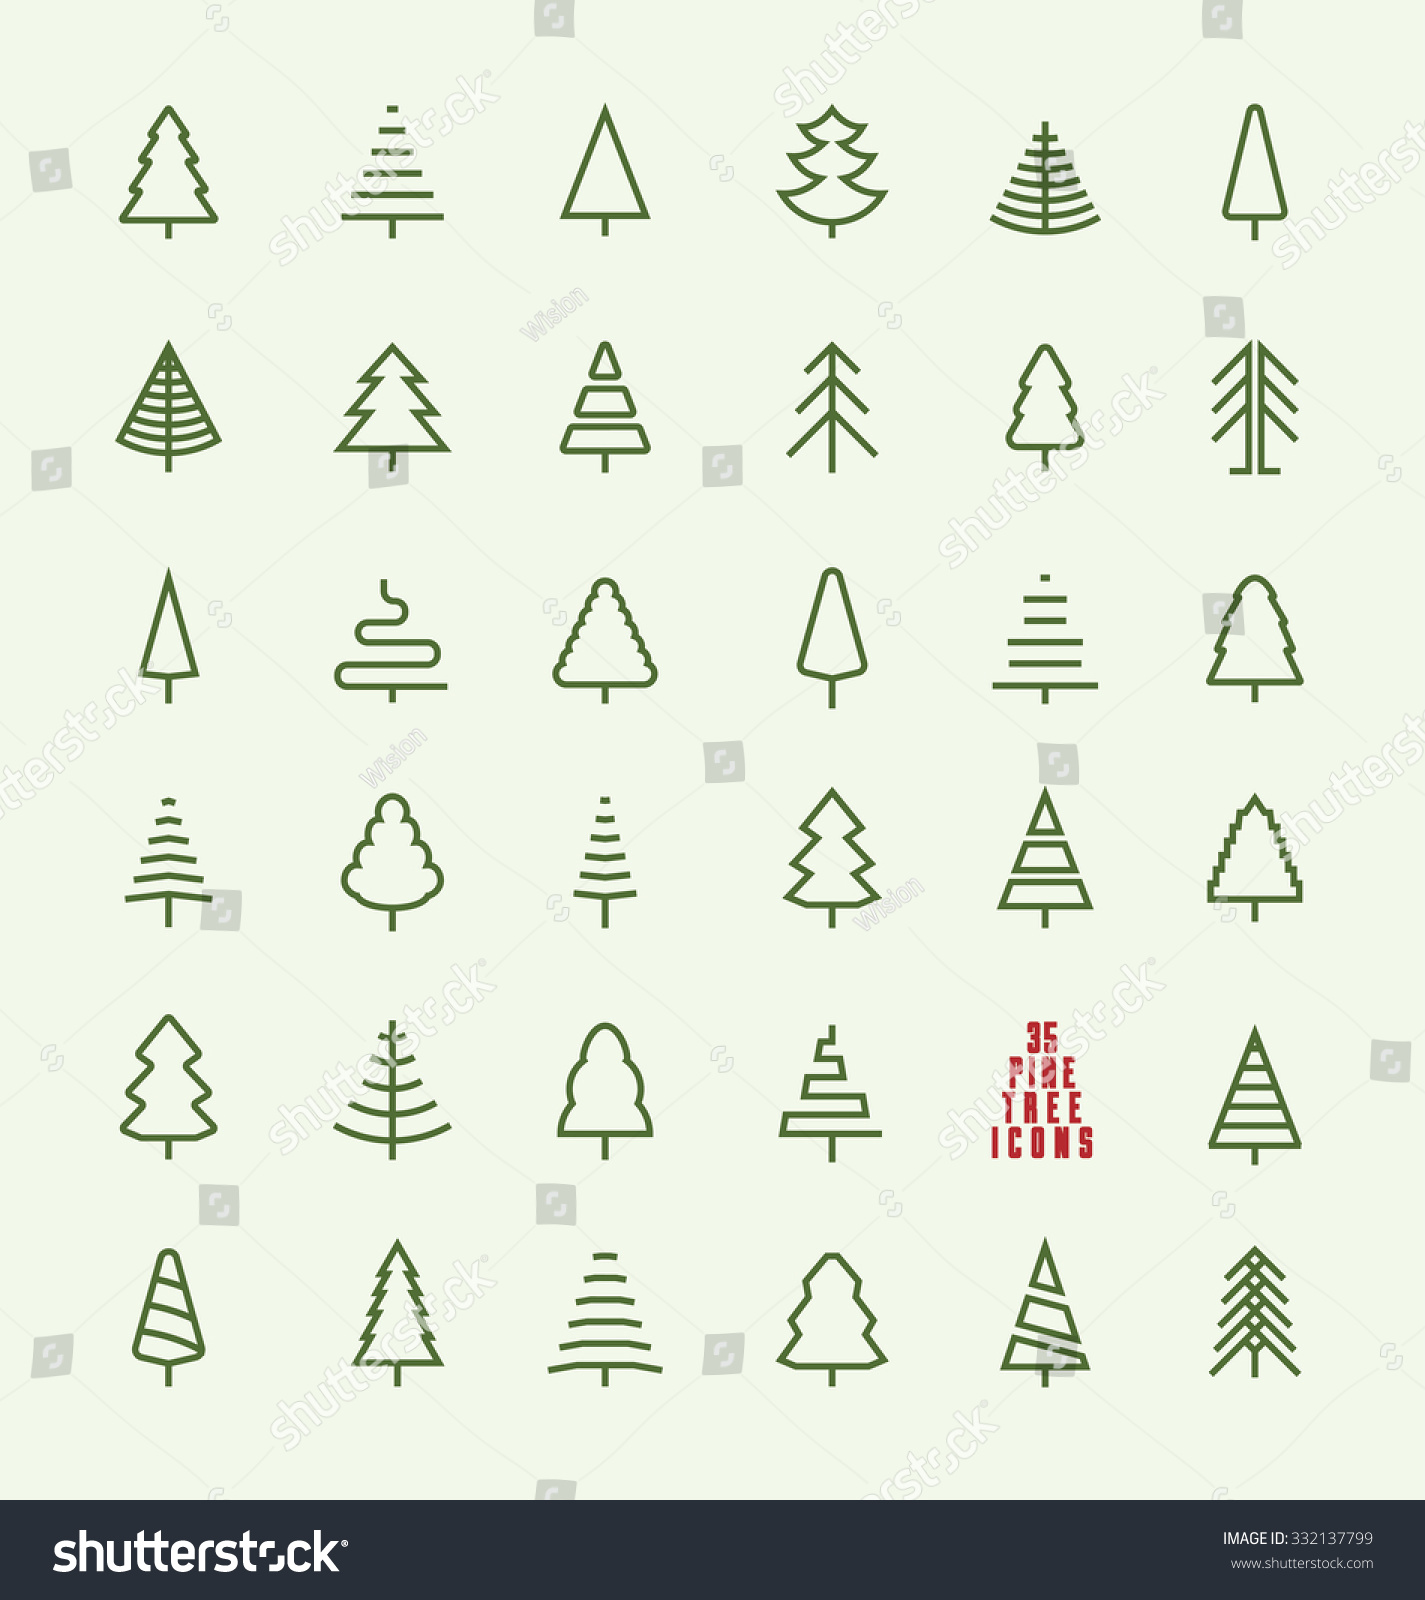 Tree Line Art Design : Thin line pine tree icon set stock vector